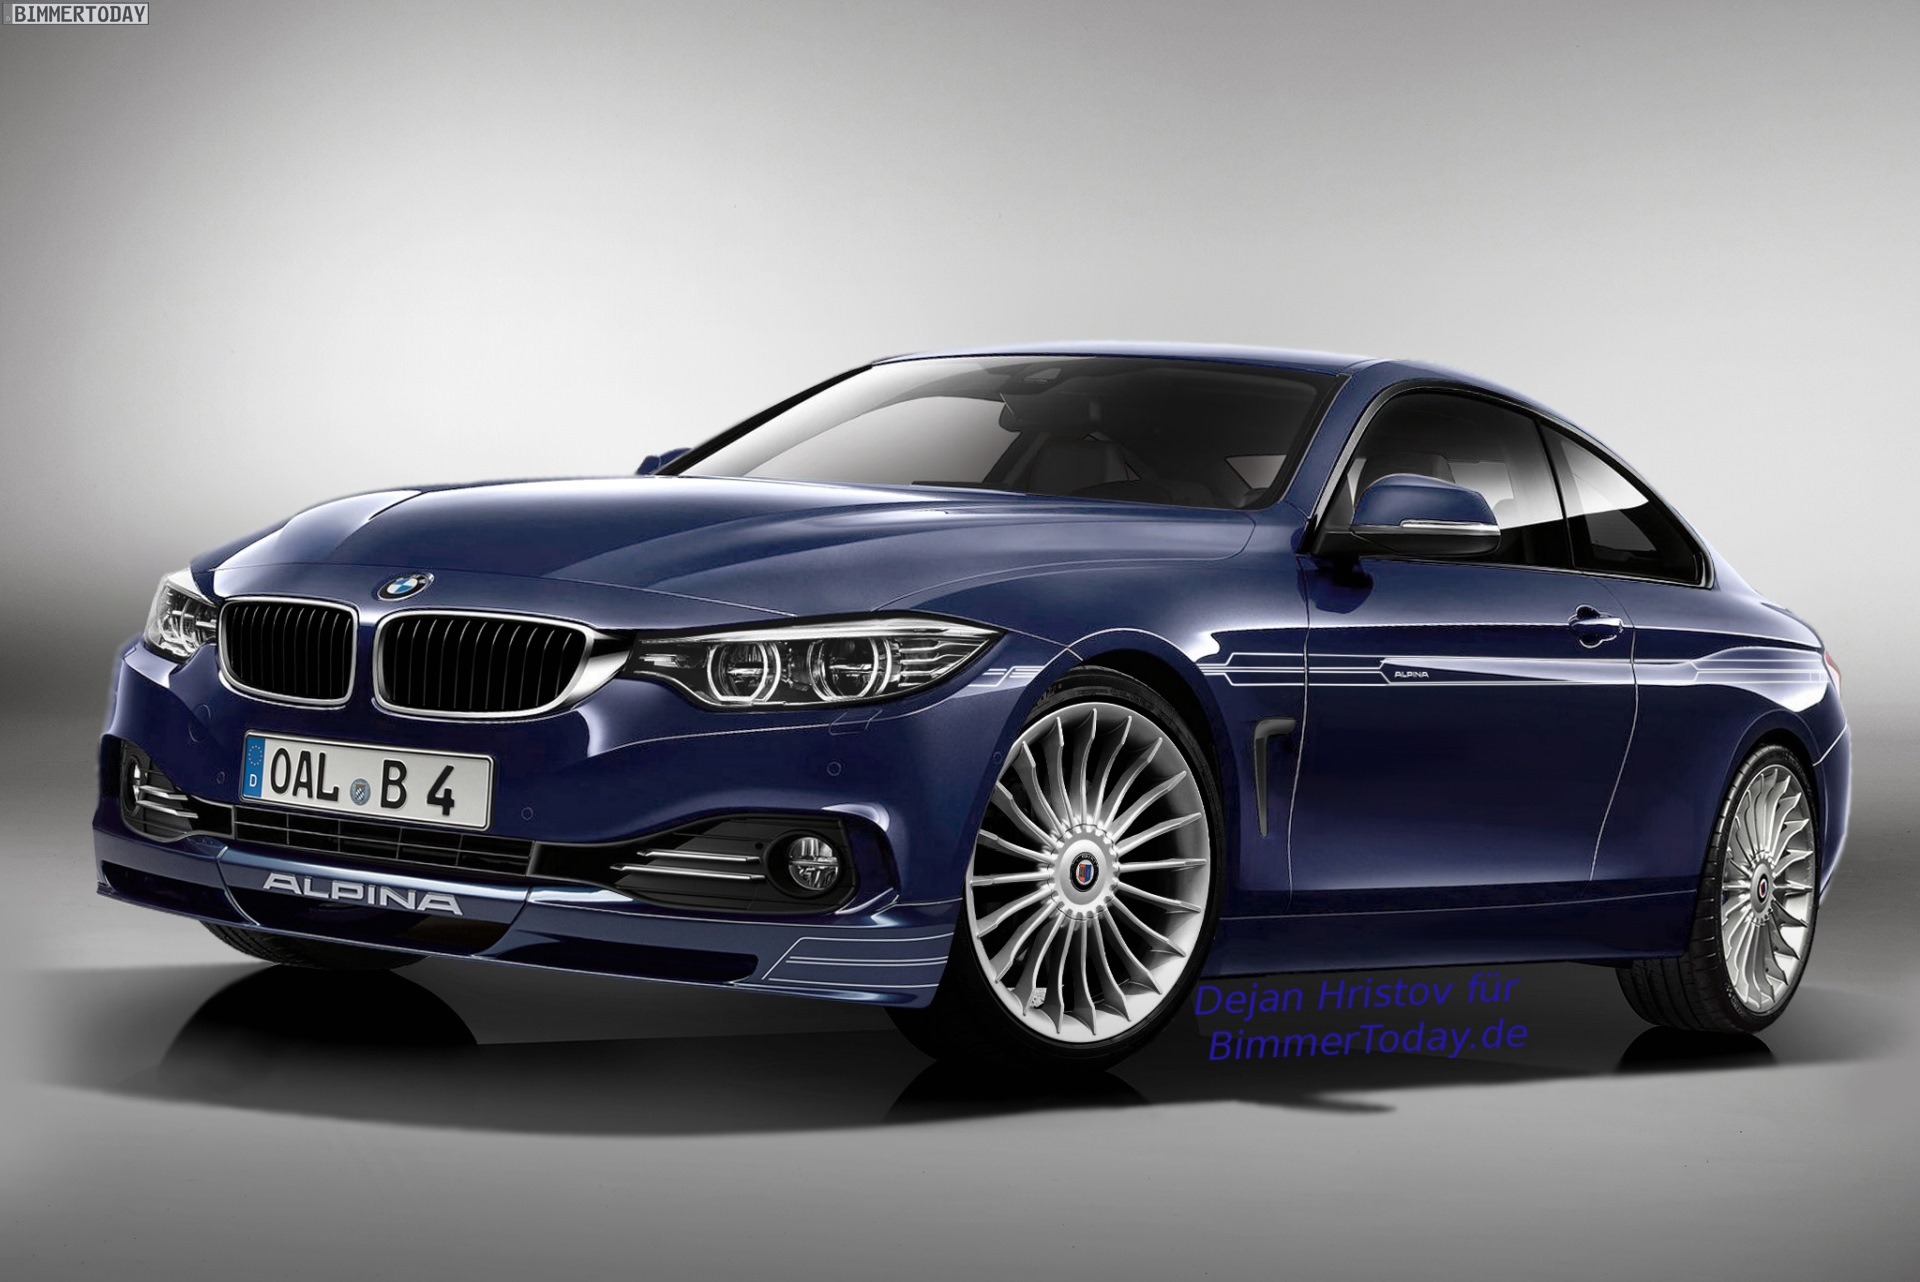 Alpina B4 F32 2013 - now Coupe #6